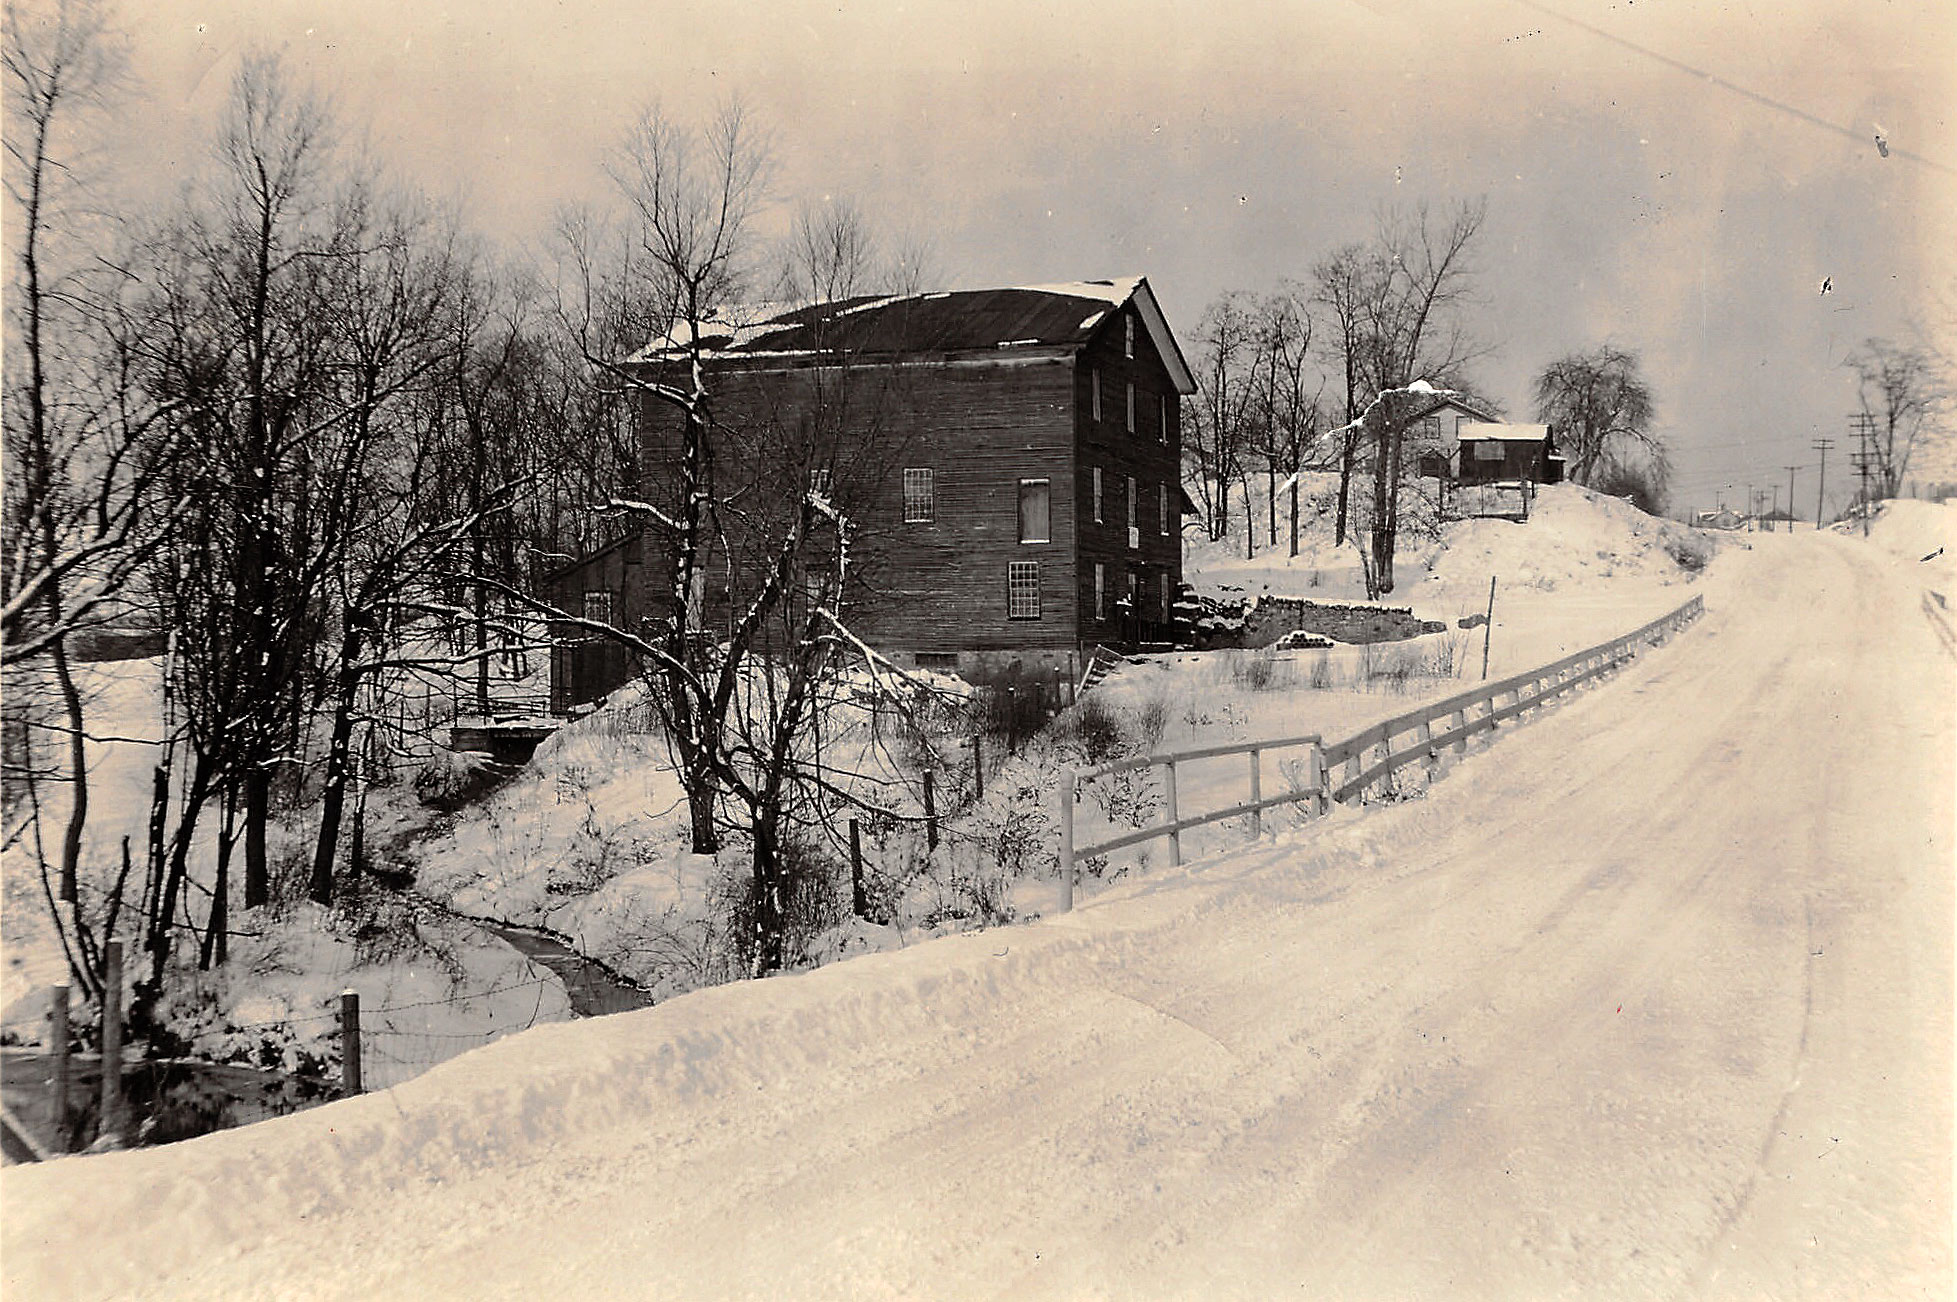 Michigan oakland county franklin - Dave Decker Will Present His Research On Milling In Oakland County From The Mid 1800 S Through The 1920 S How Mills Affected Daily Life And How Where You